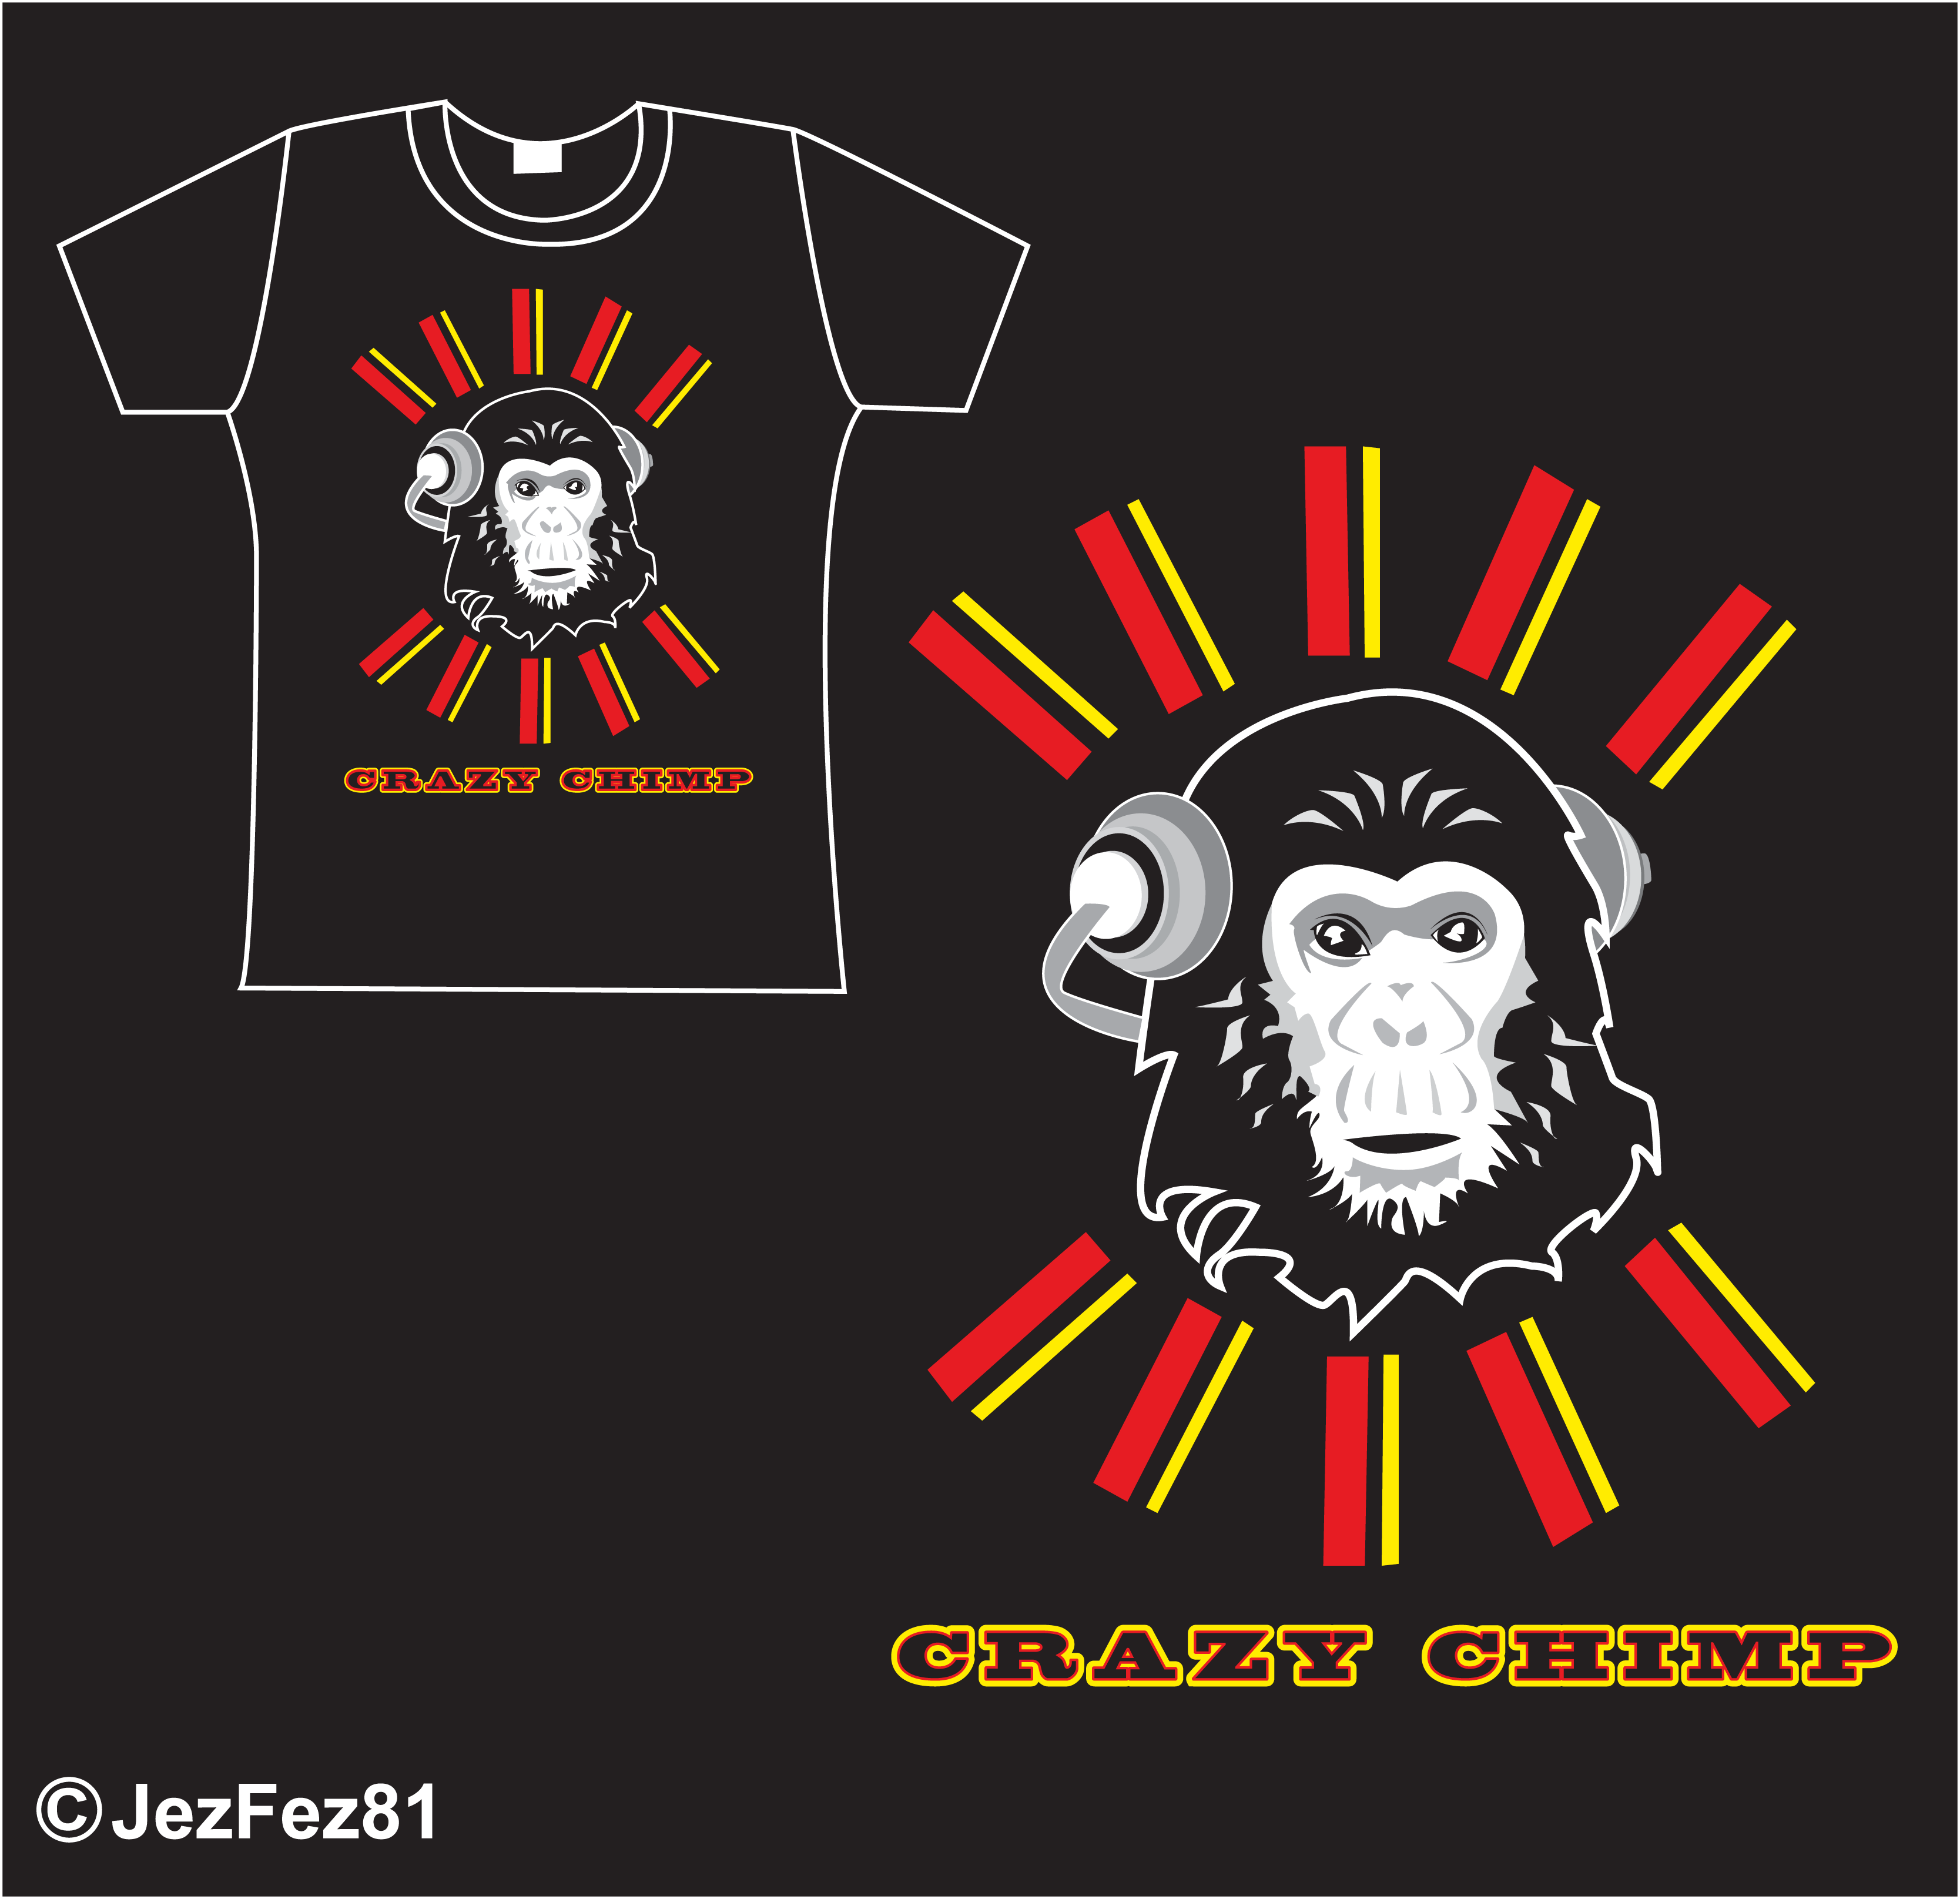 Crazy chimp t shirt designs 2 by jezzy fezzy on deviantart for Crazy t shirt designs